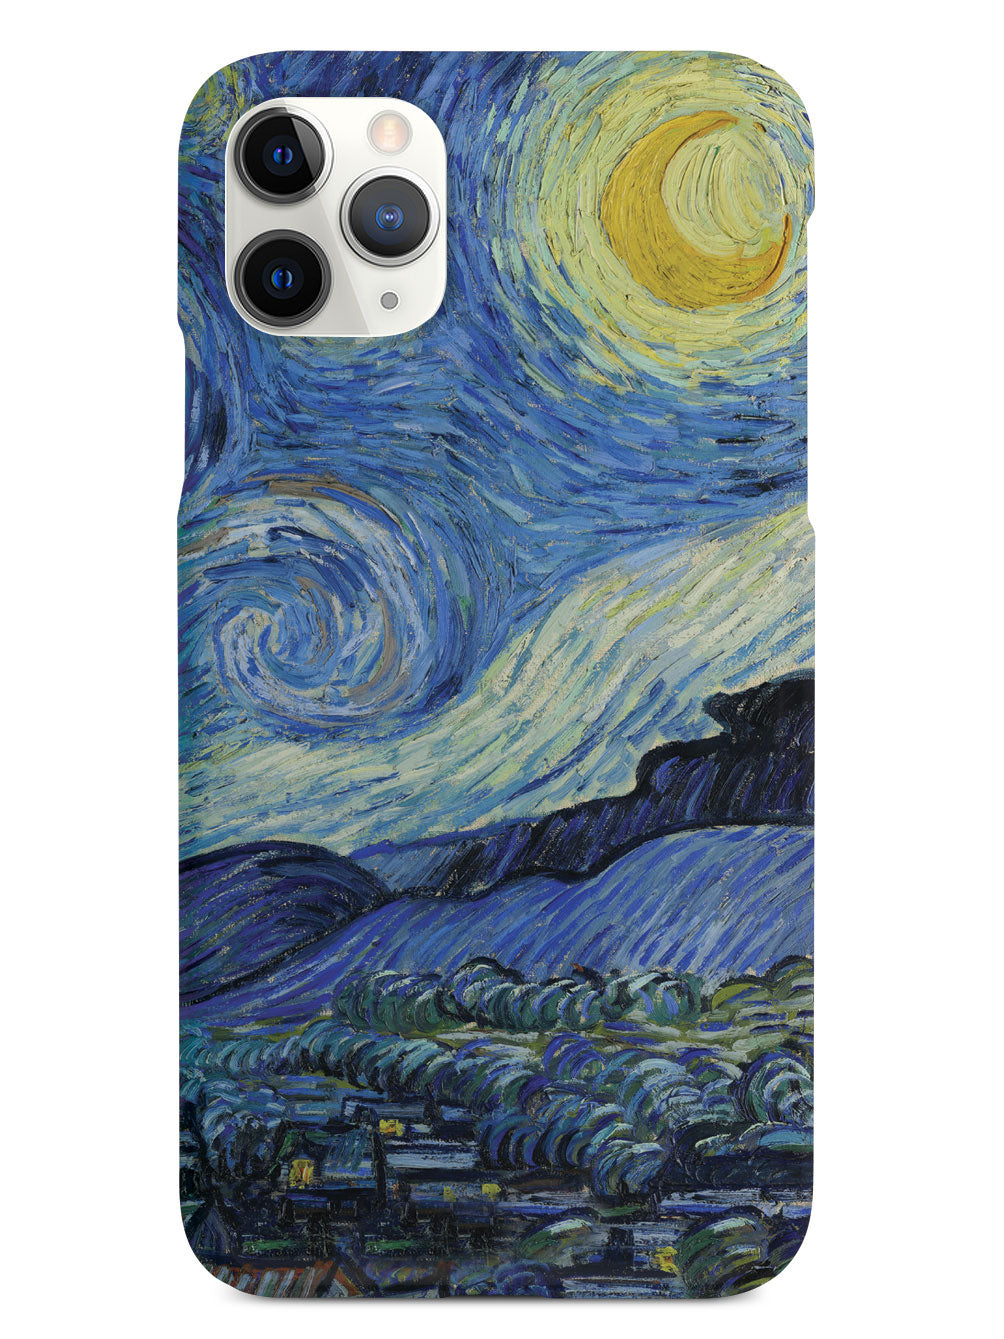 Vincent van Gogh - Starry Night Case